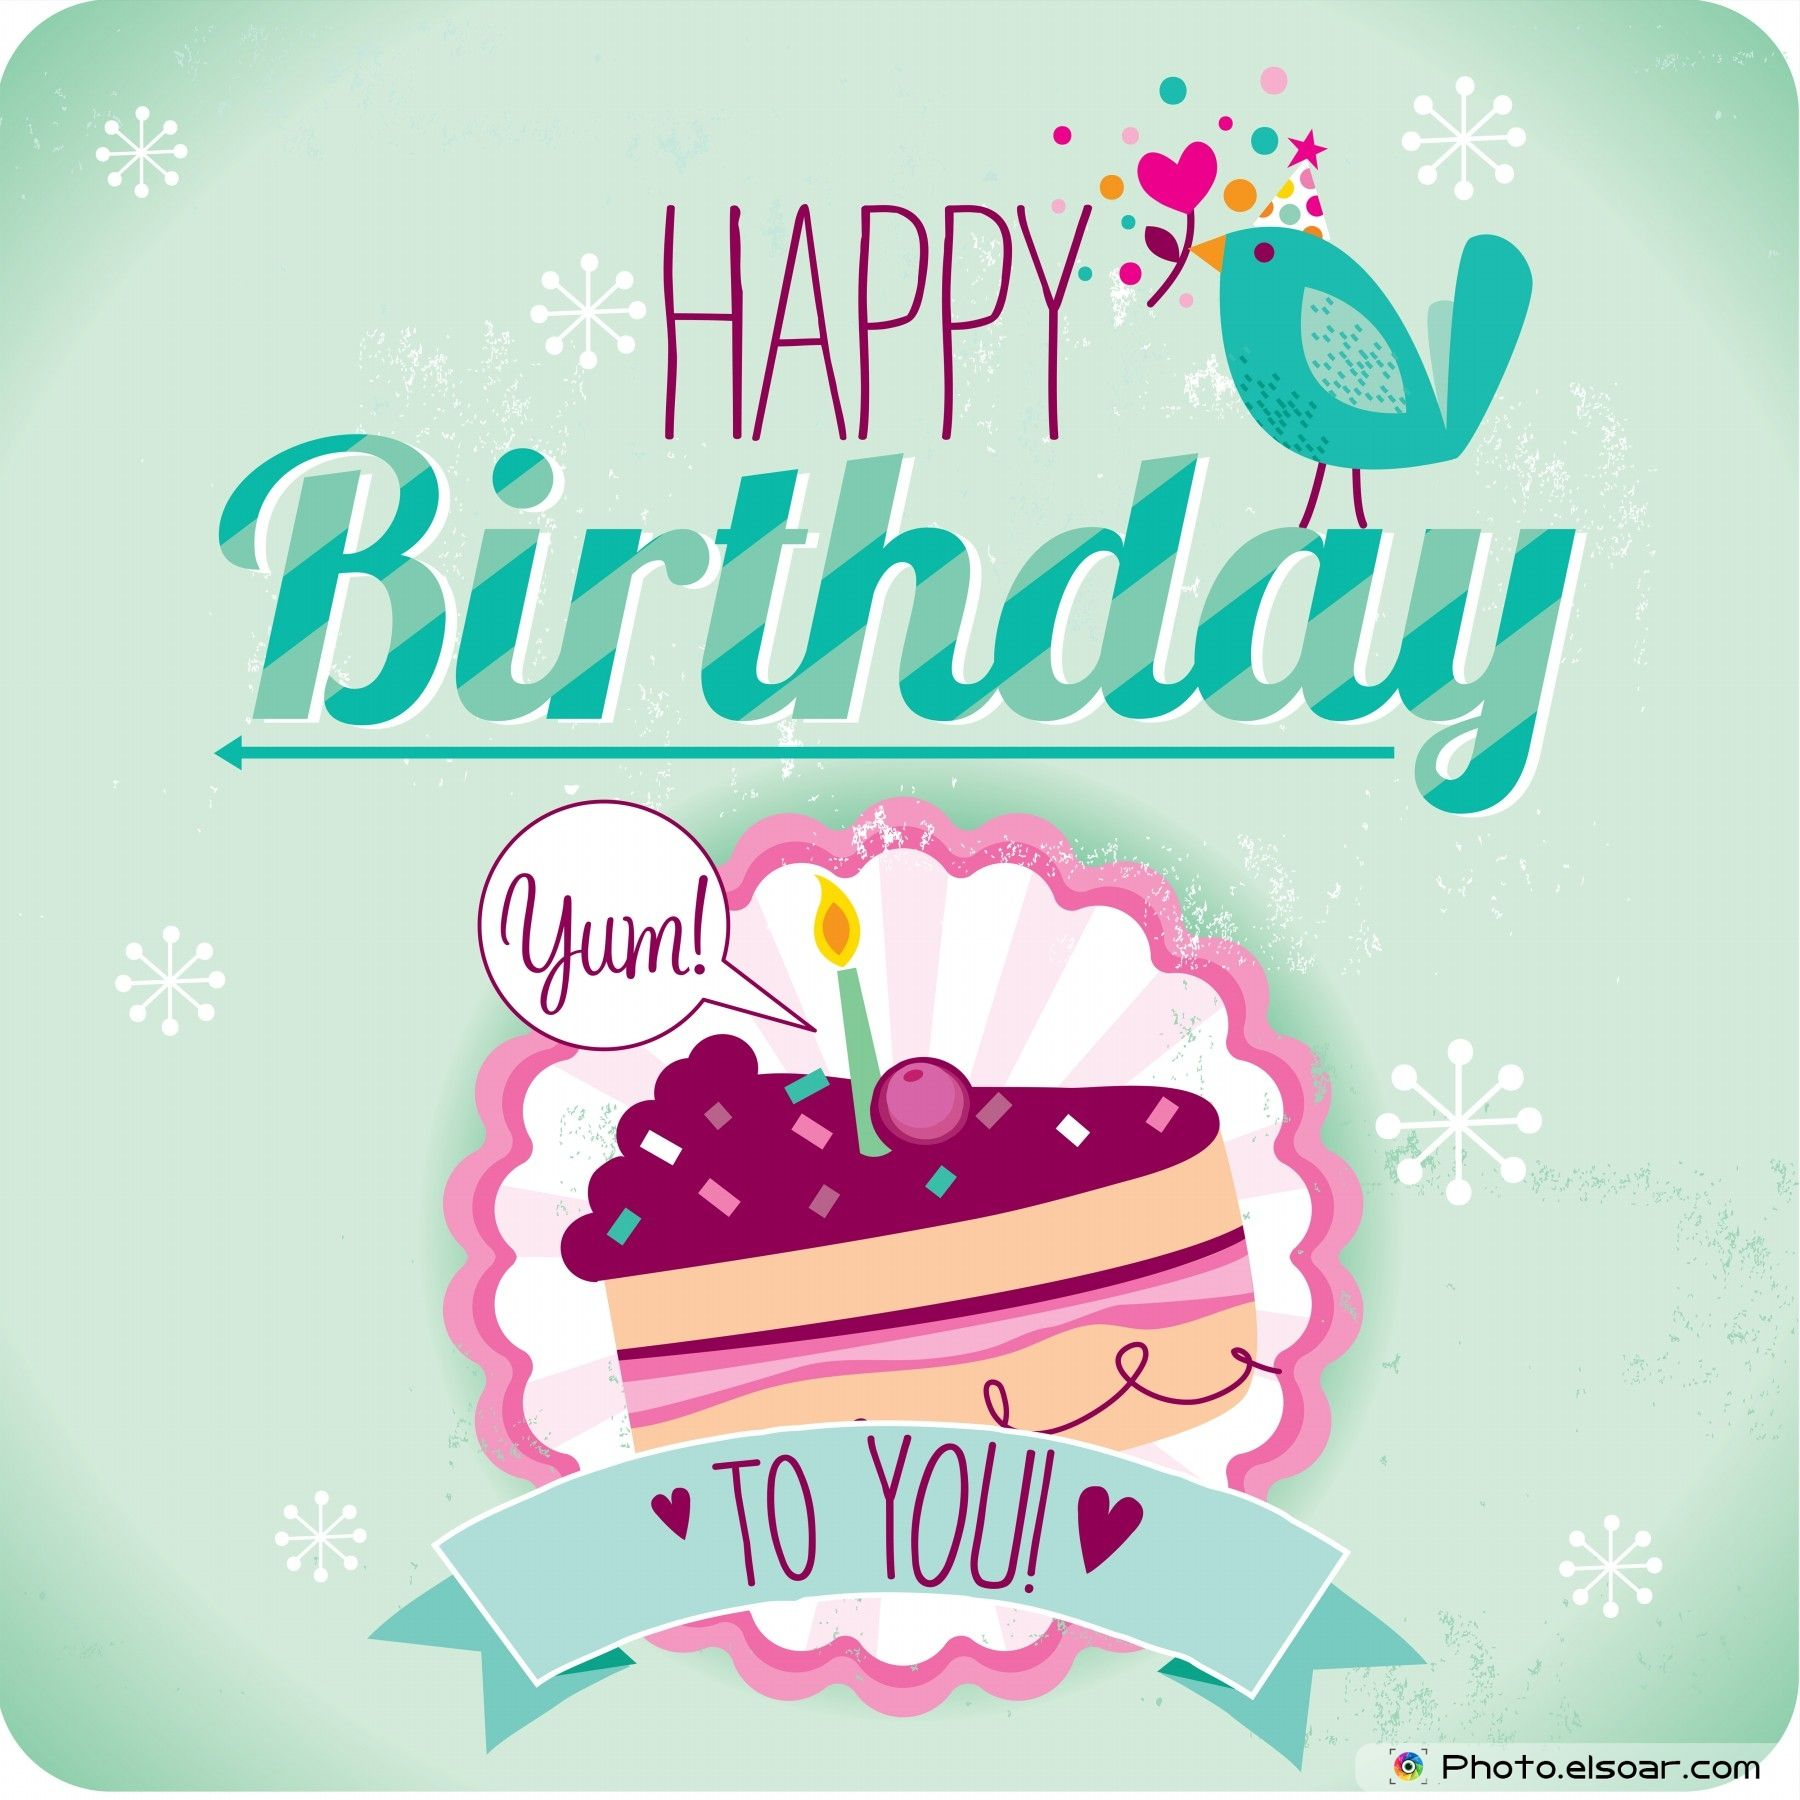 wallpaper happy birthday to you ; 0029902ab97d03c9c4cd4262ea7476b7